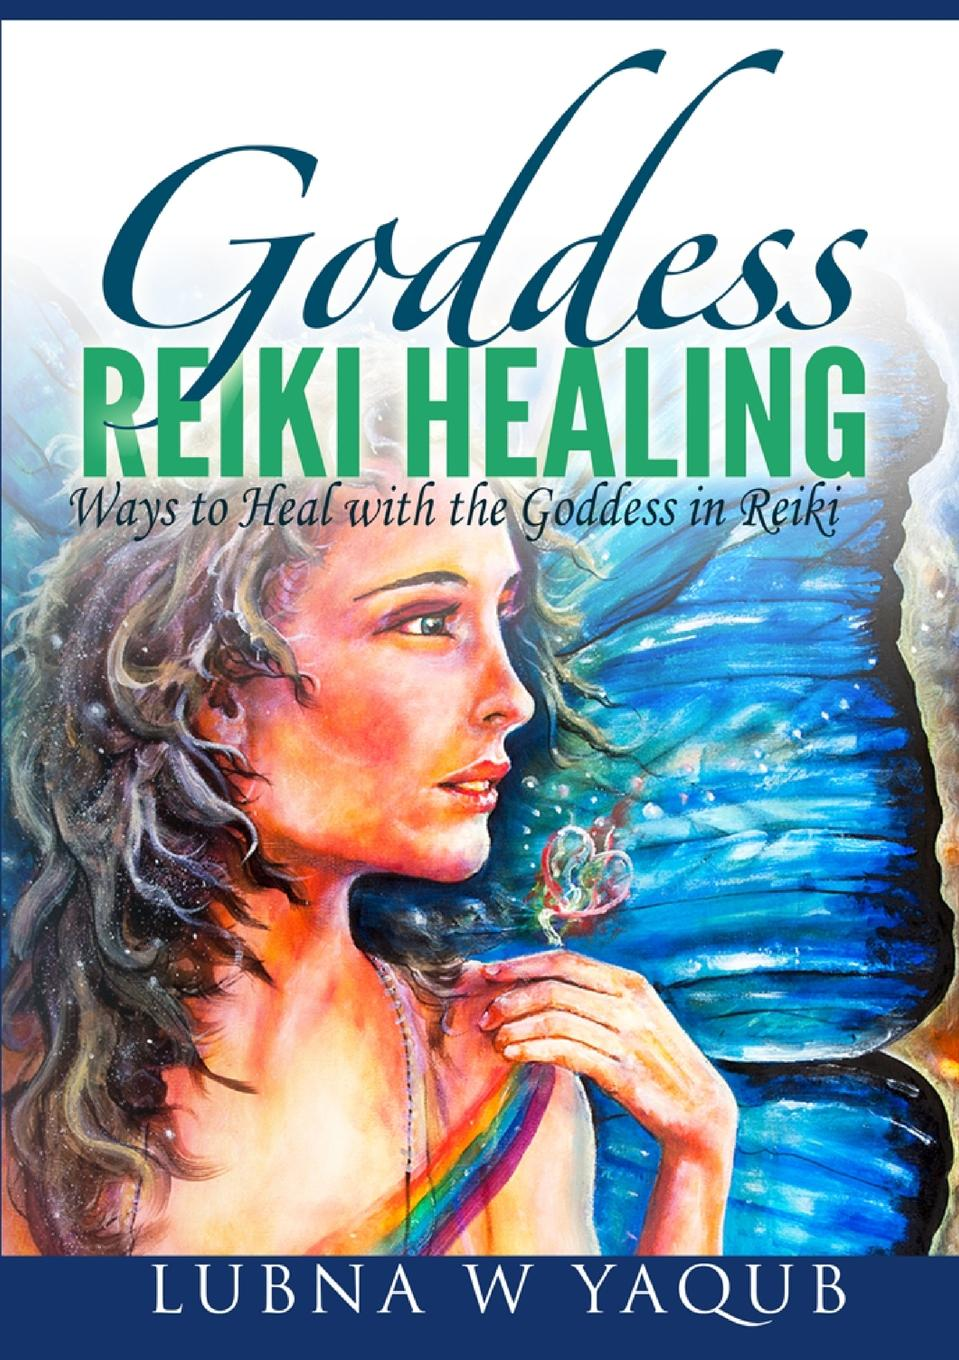 Lubna Yaqub Goddess Reiki Healing the goddess rules